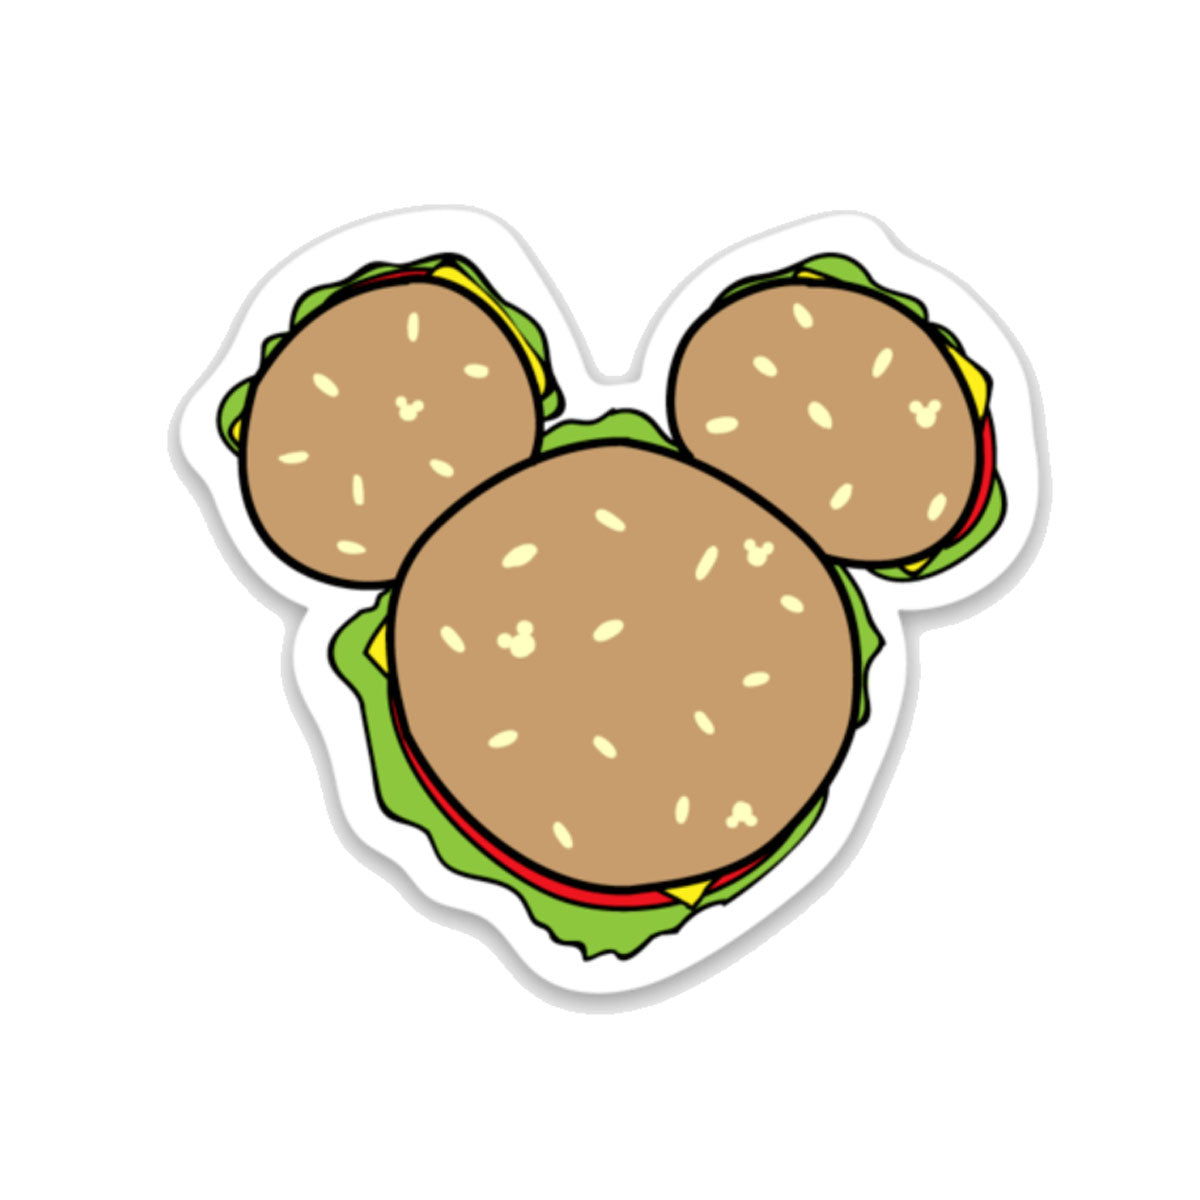 Mouse Ears Burger Decal